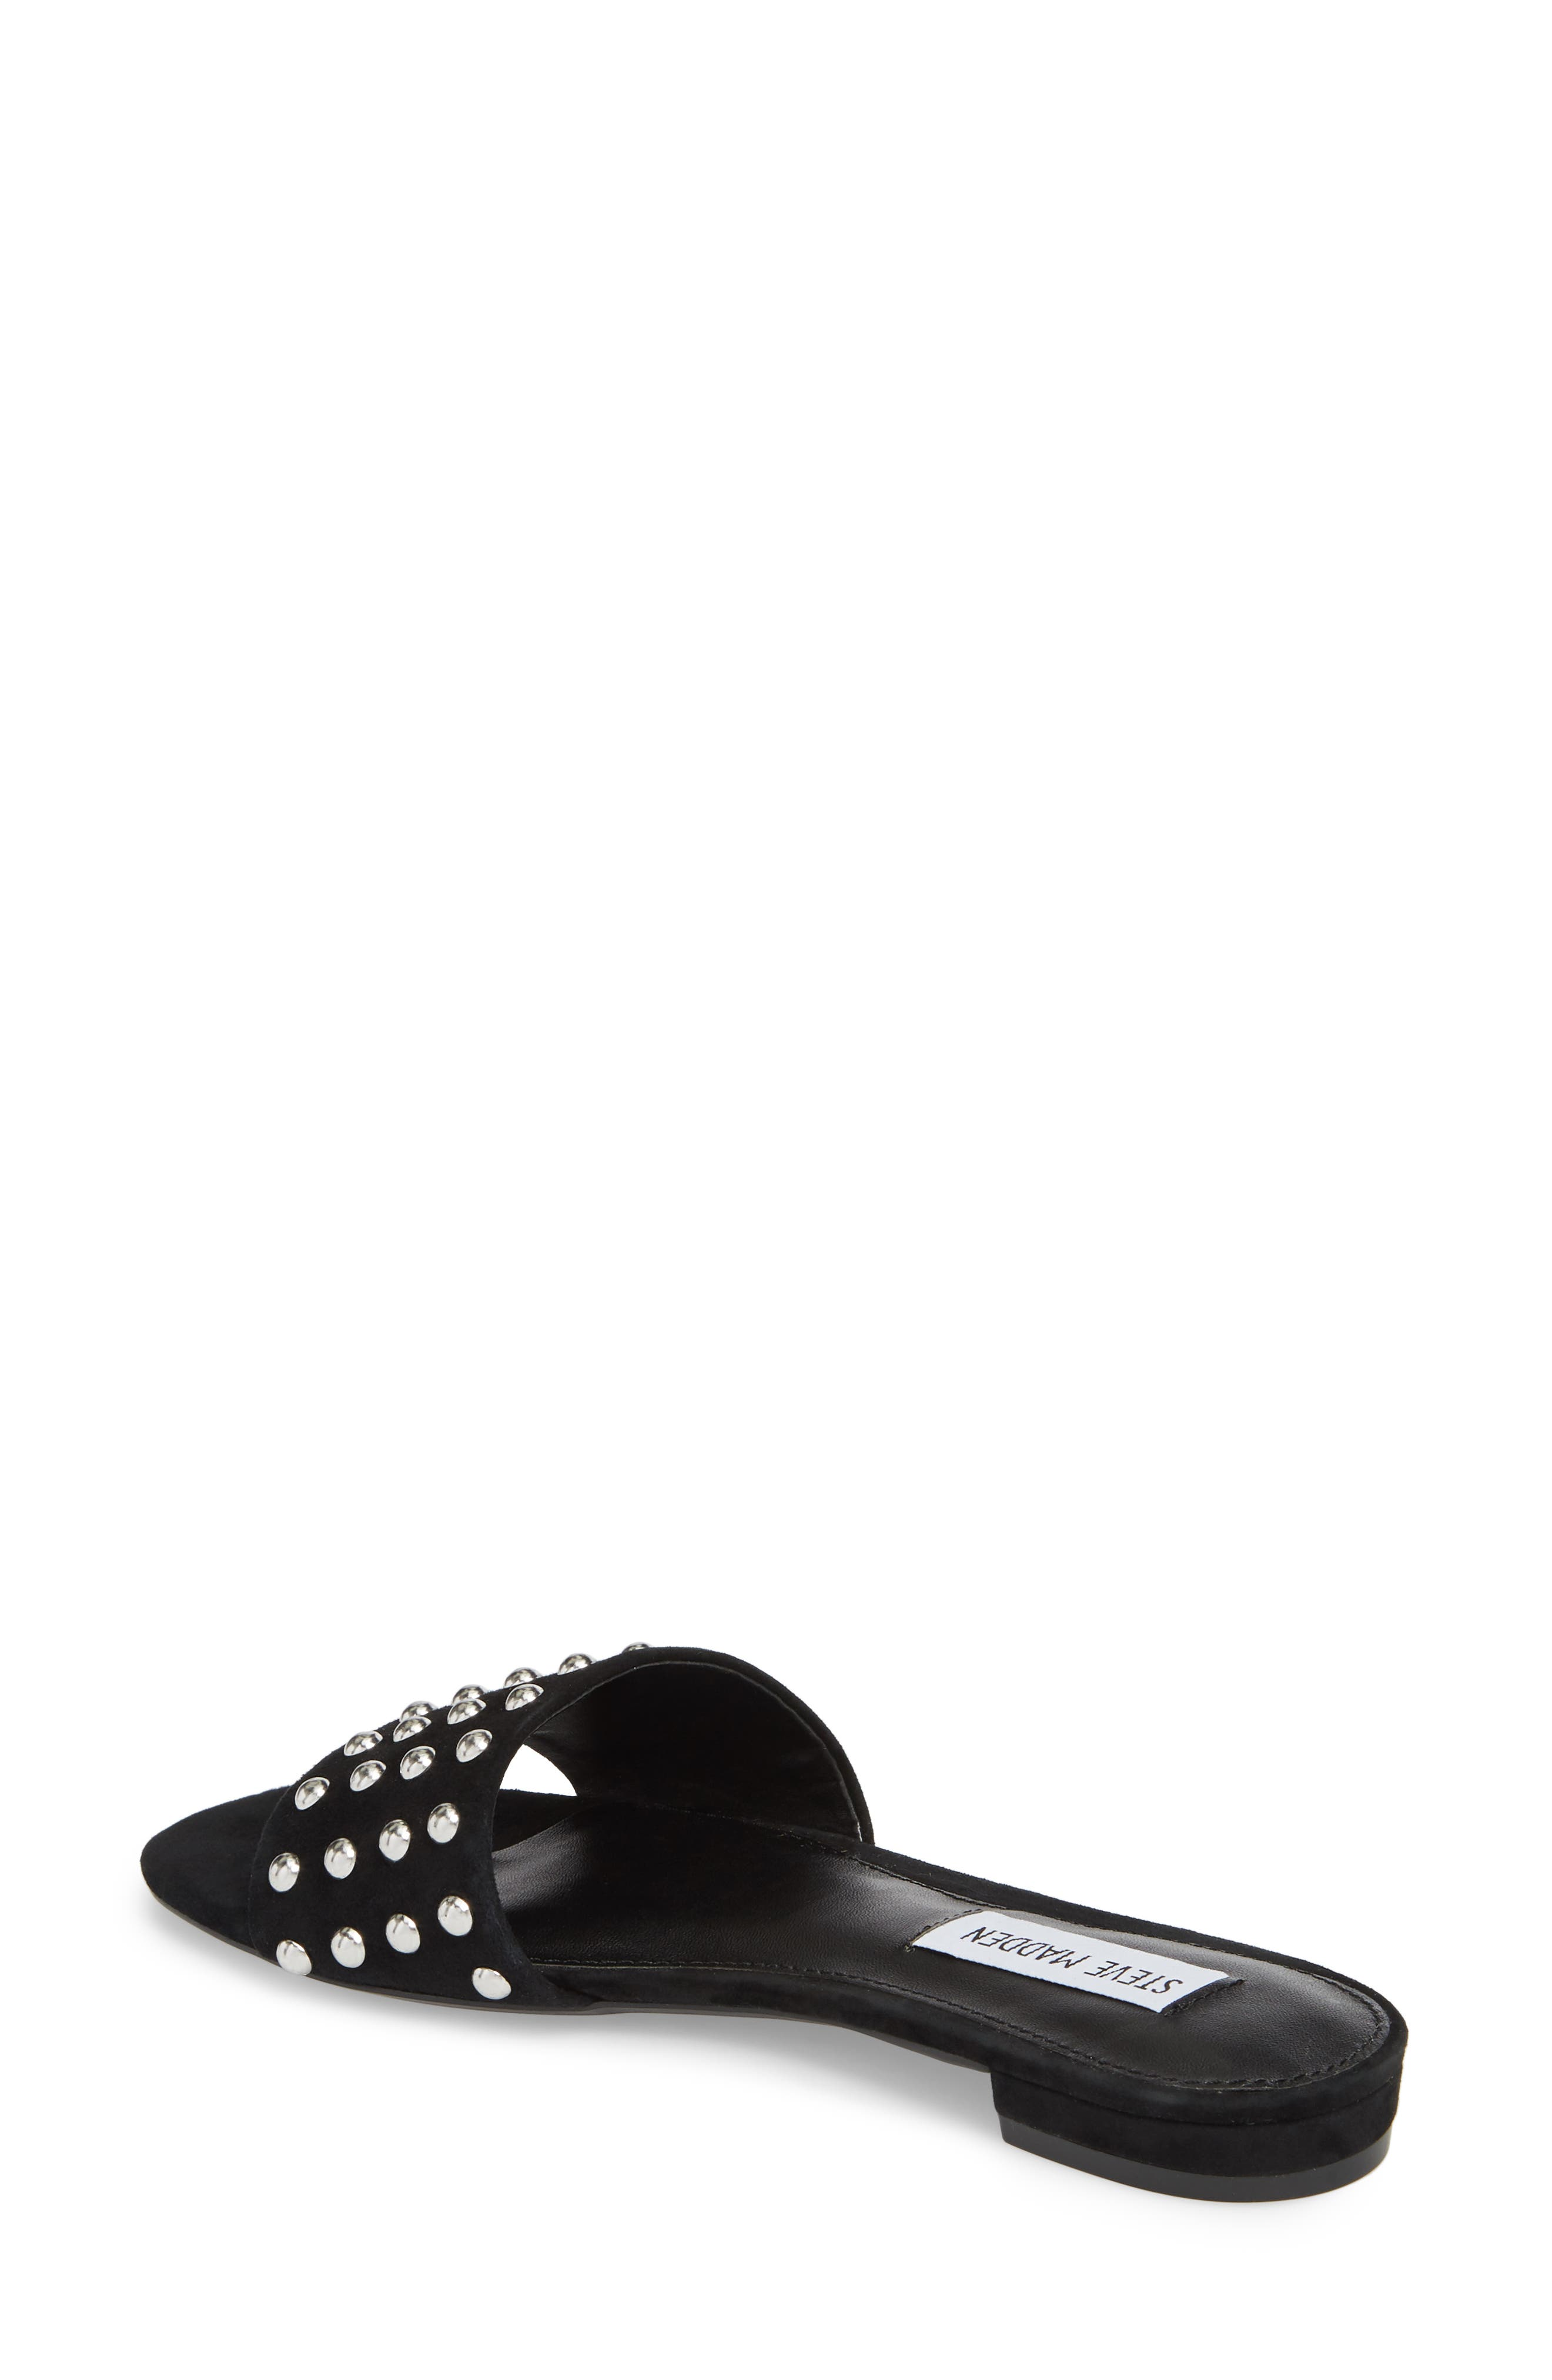 Viv Studded Slide Sandal,                             Alternate thumbnail 2, color,                             006